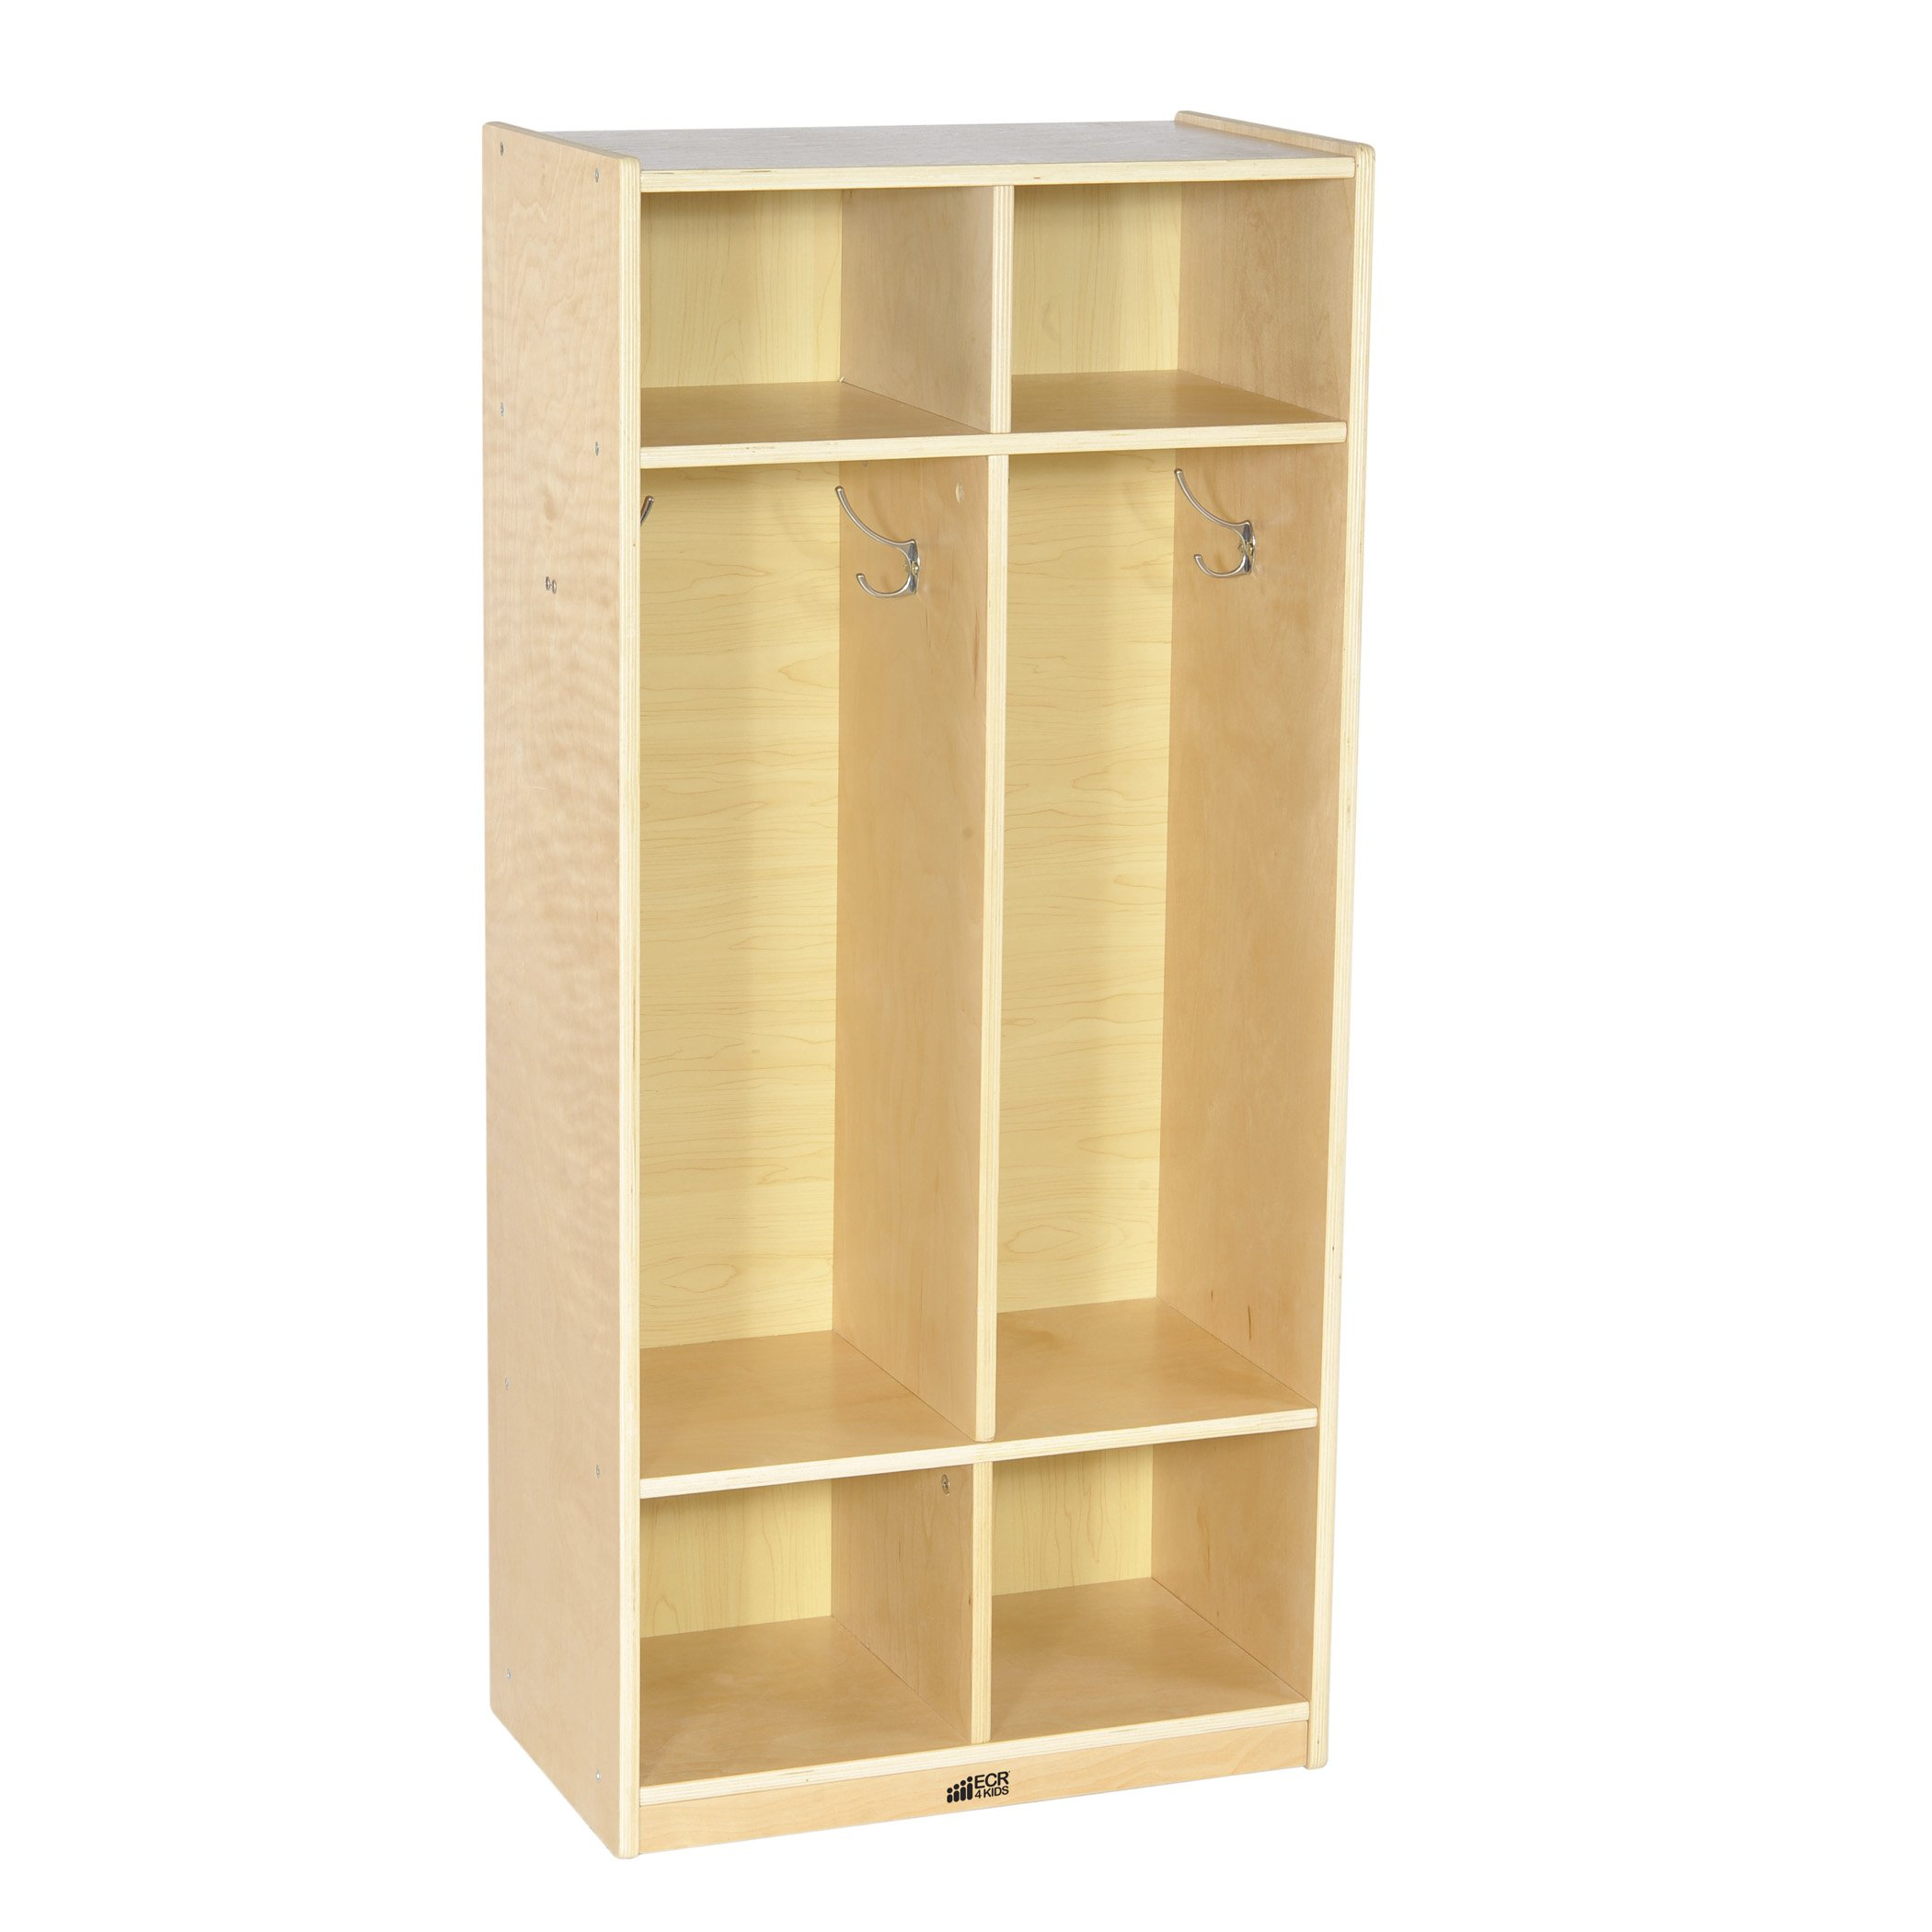 ECR4Kids Birch School Coat Locker for Toddlers and Kids, 2-Section, Natural by ECR4Kids